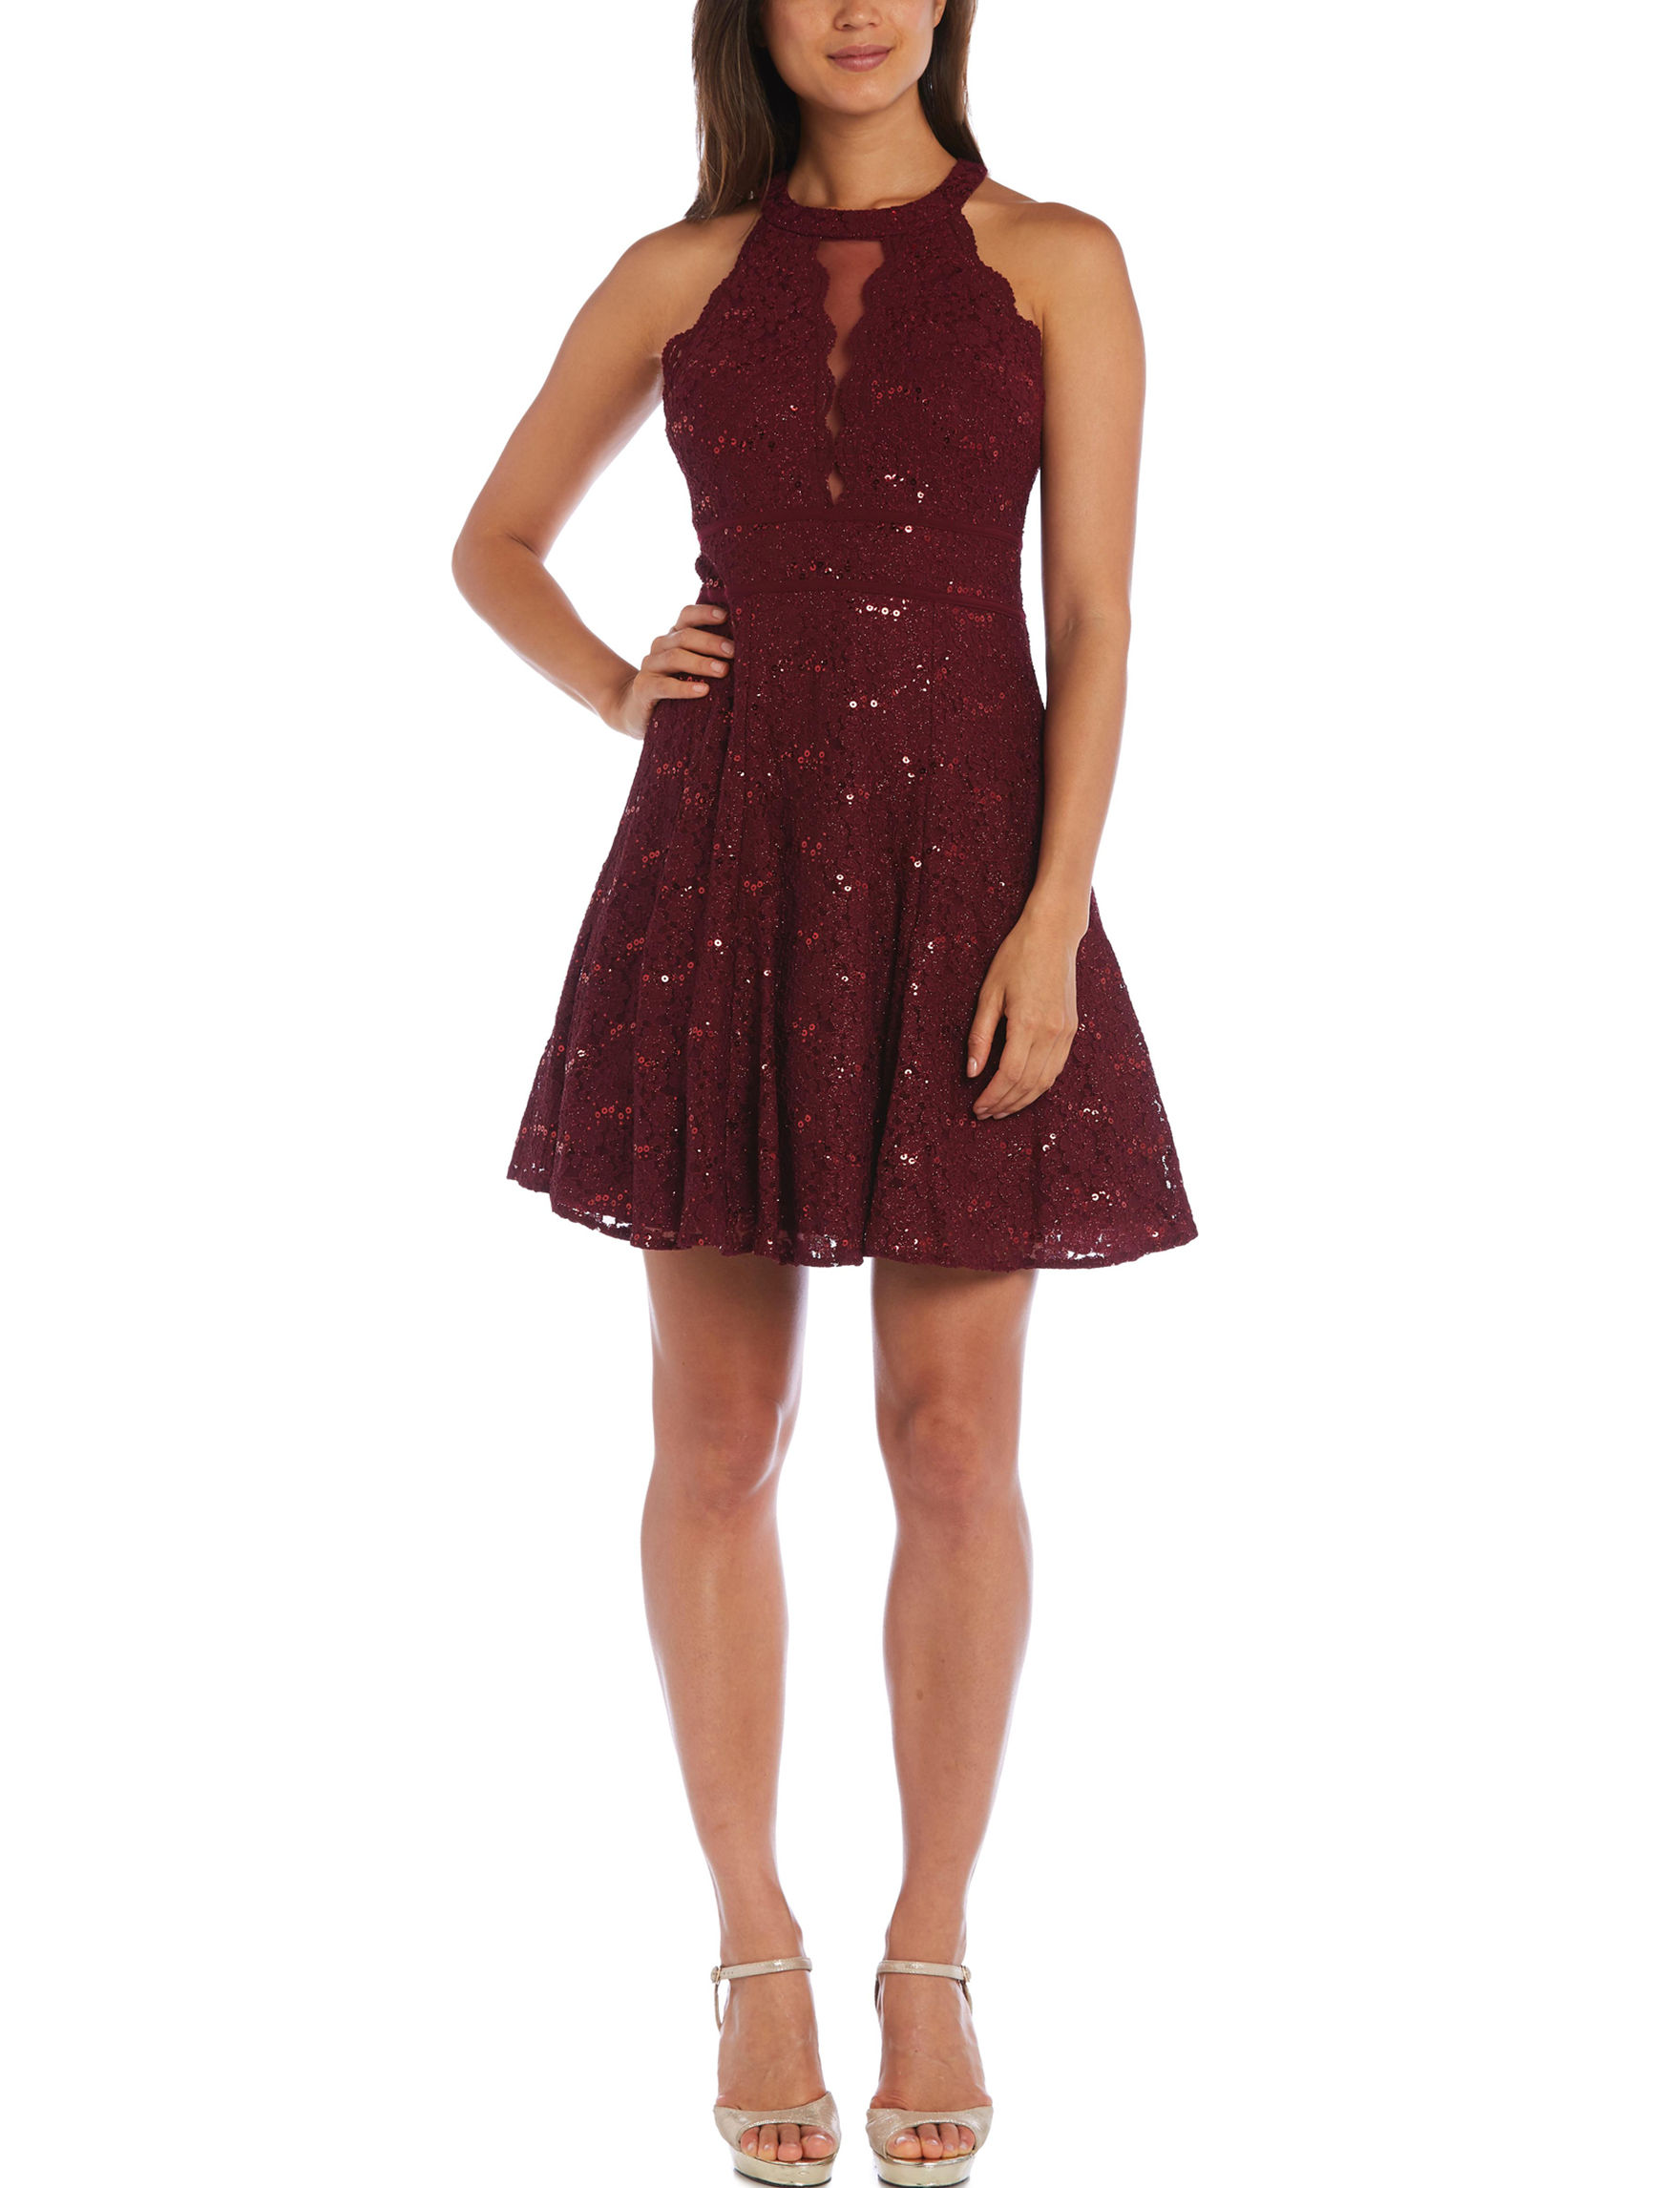 Morgan & Co. Merlot Cocktail & Party Fit & Flare Dresses